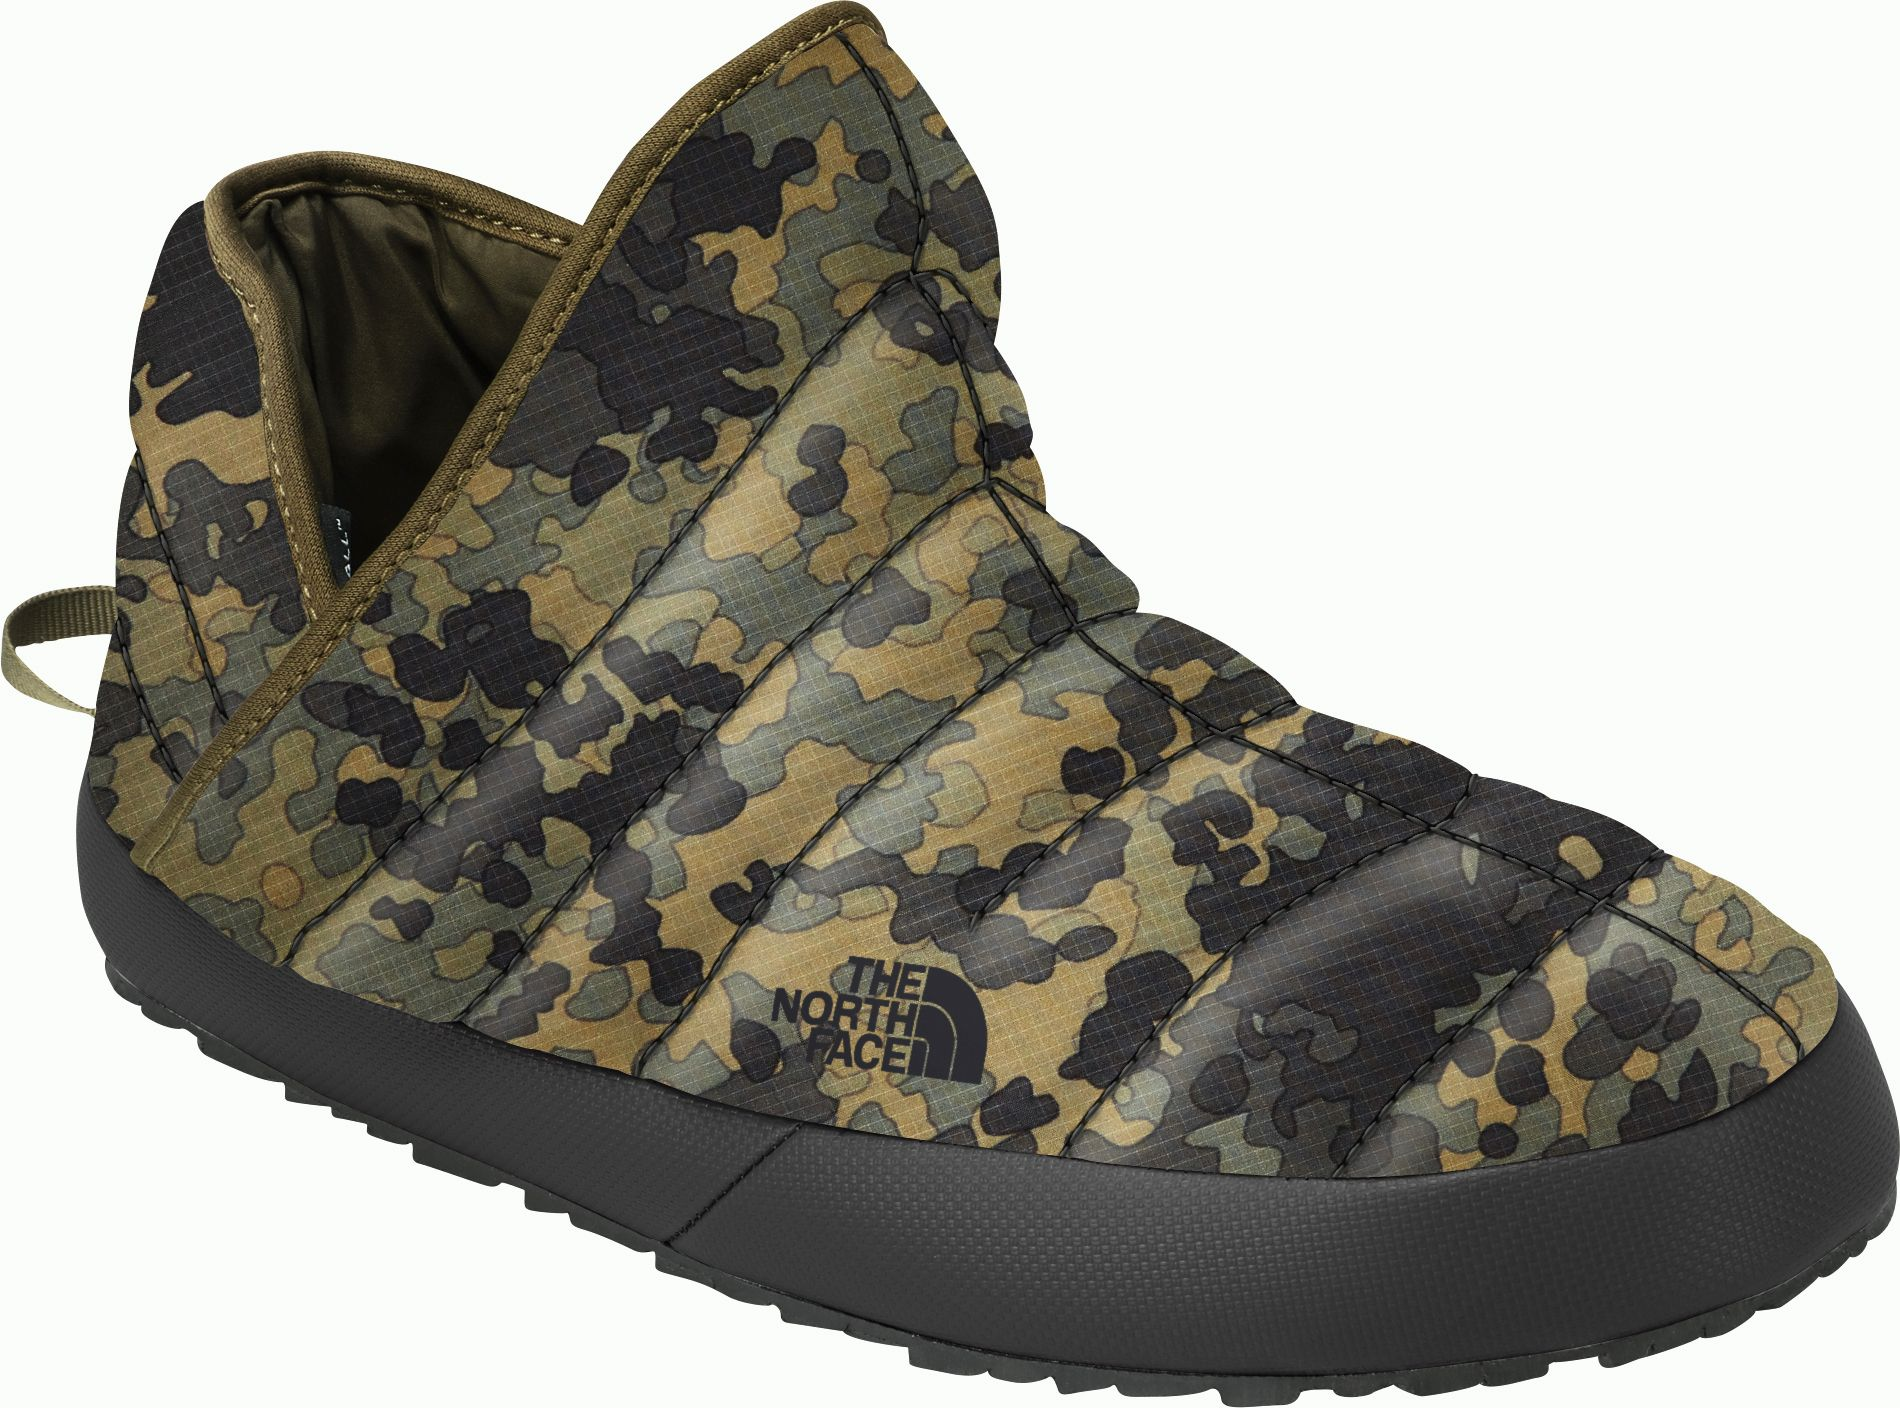 d7467b2f6 The North Face Men's Thermal Bootie Insulated Slippers, Green ...